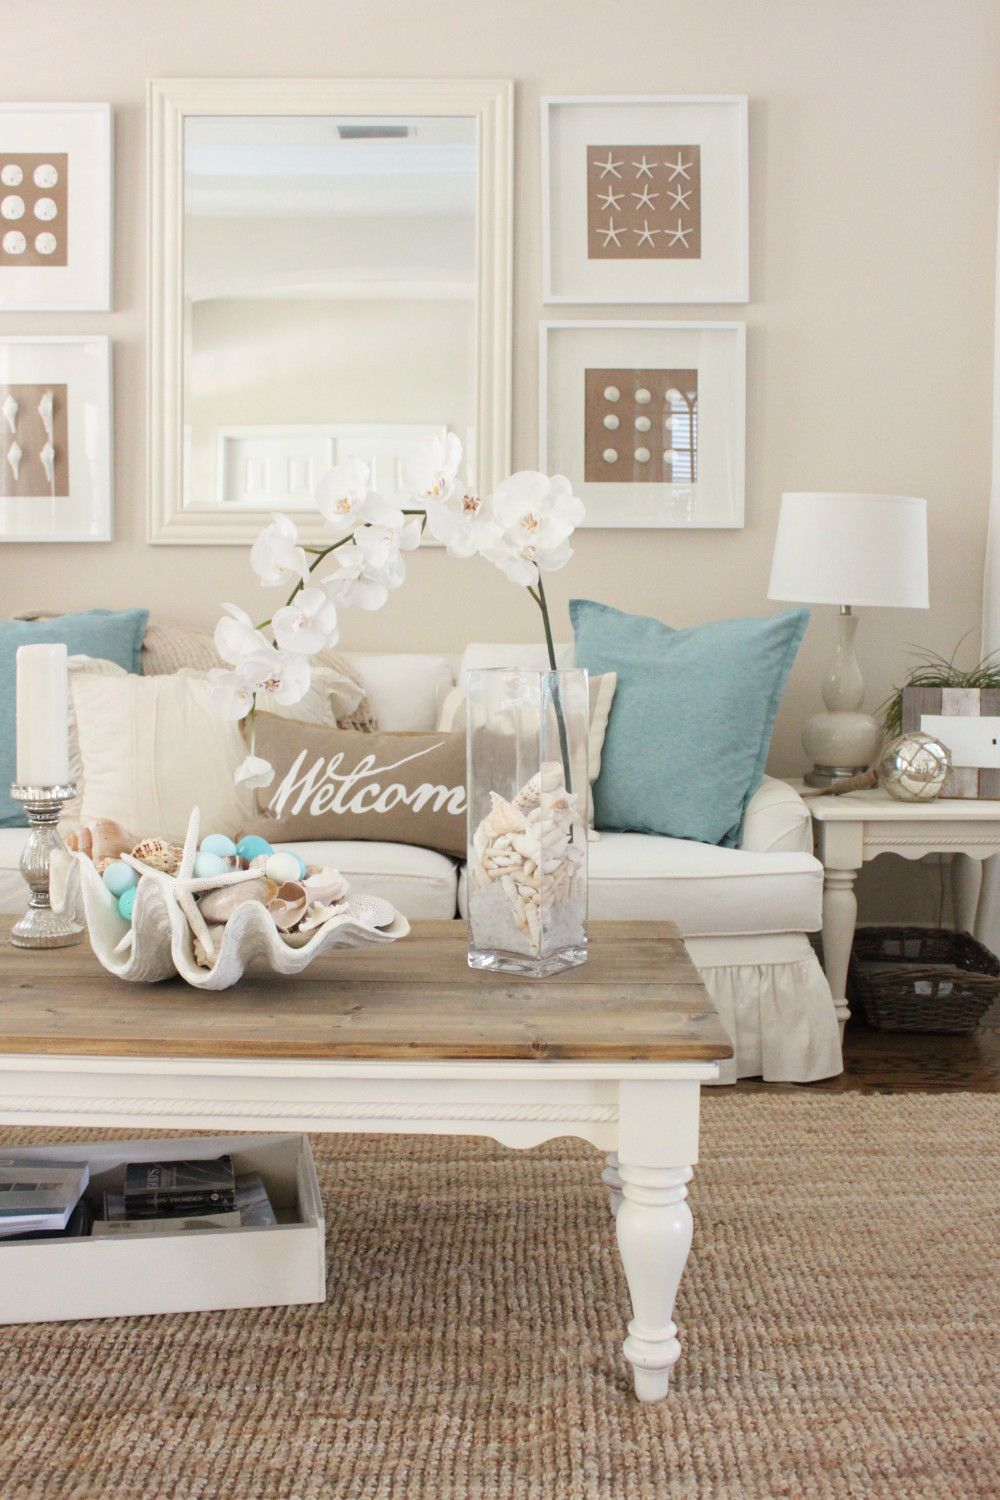 Beach Living Room Decor Low Price Furniture 50 Inspiring Ideas Day Coastal Rooms Easter 2016 At Starfish Cottage The